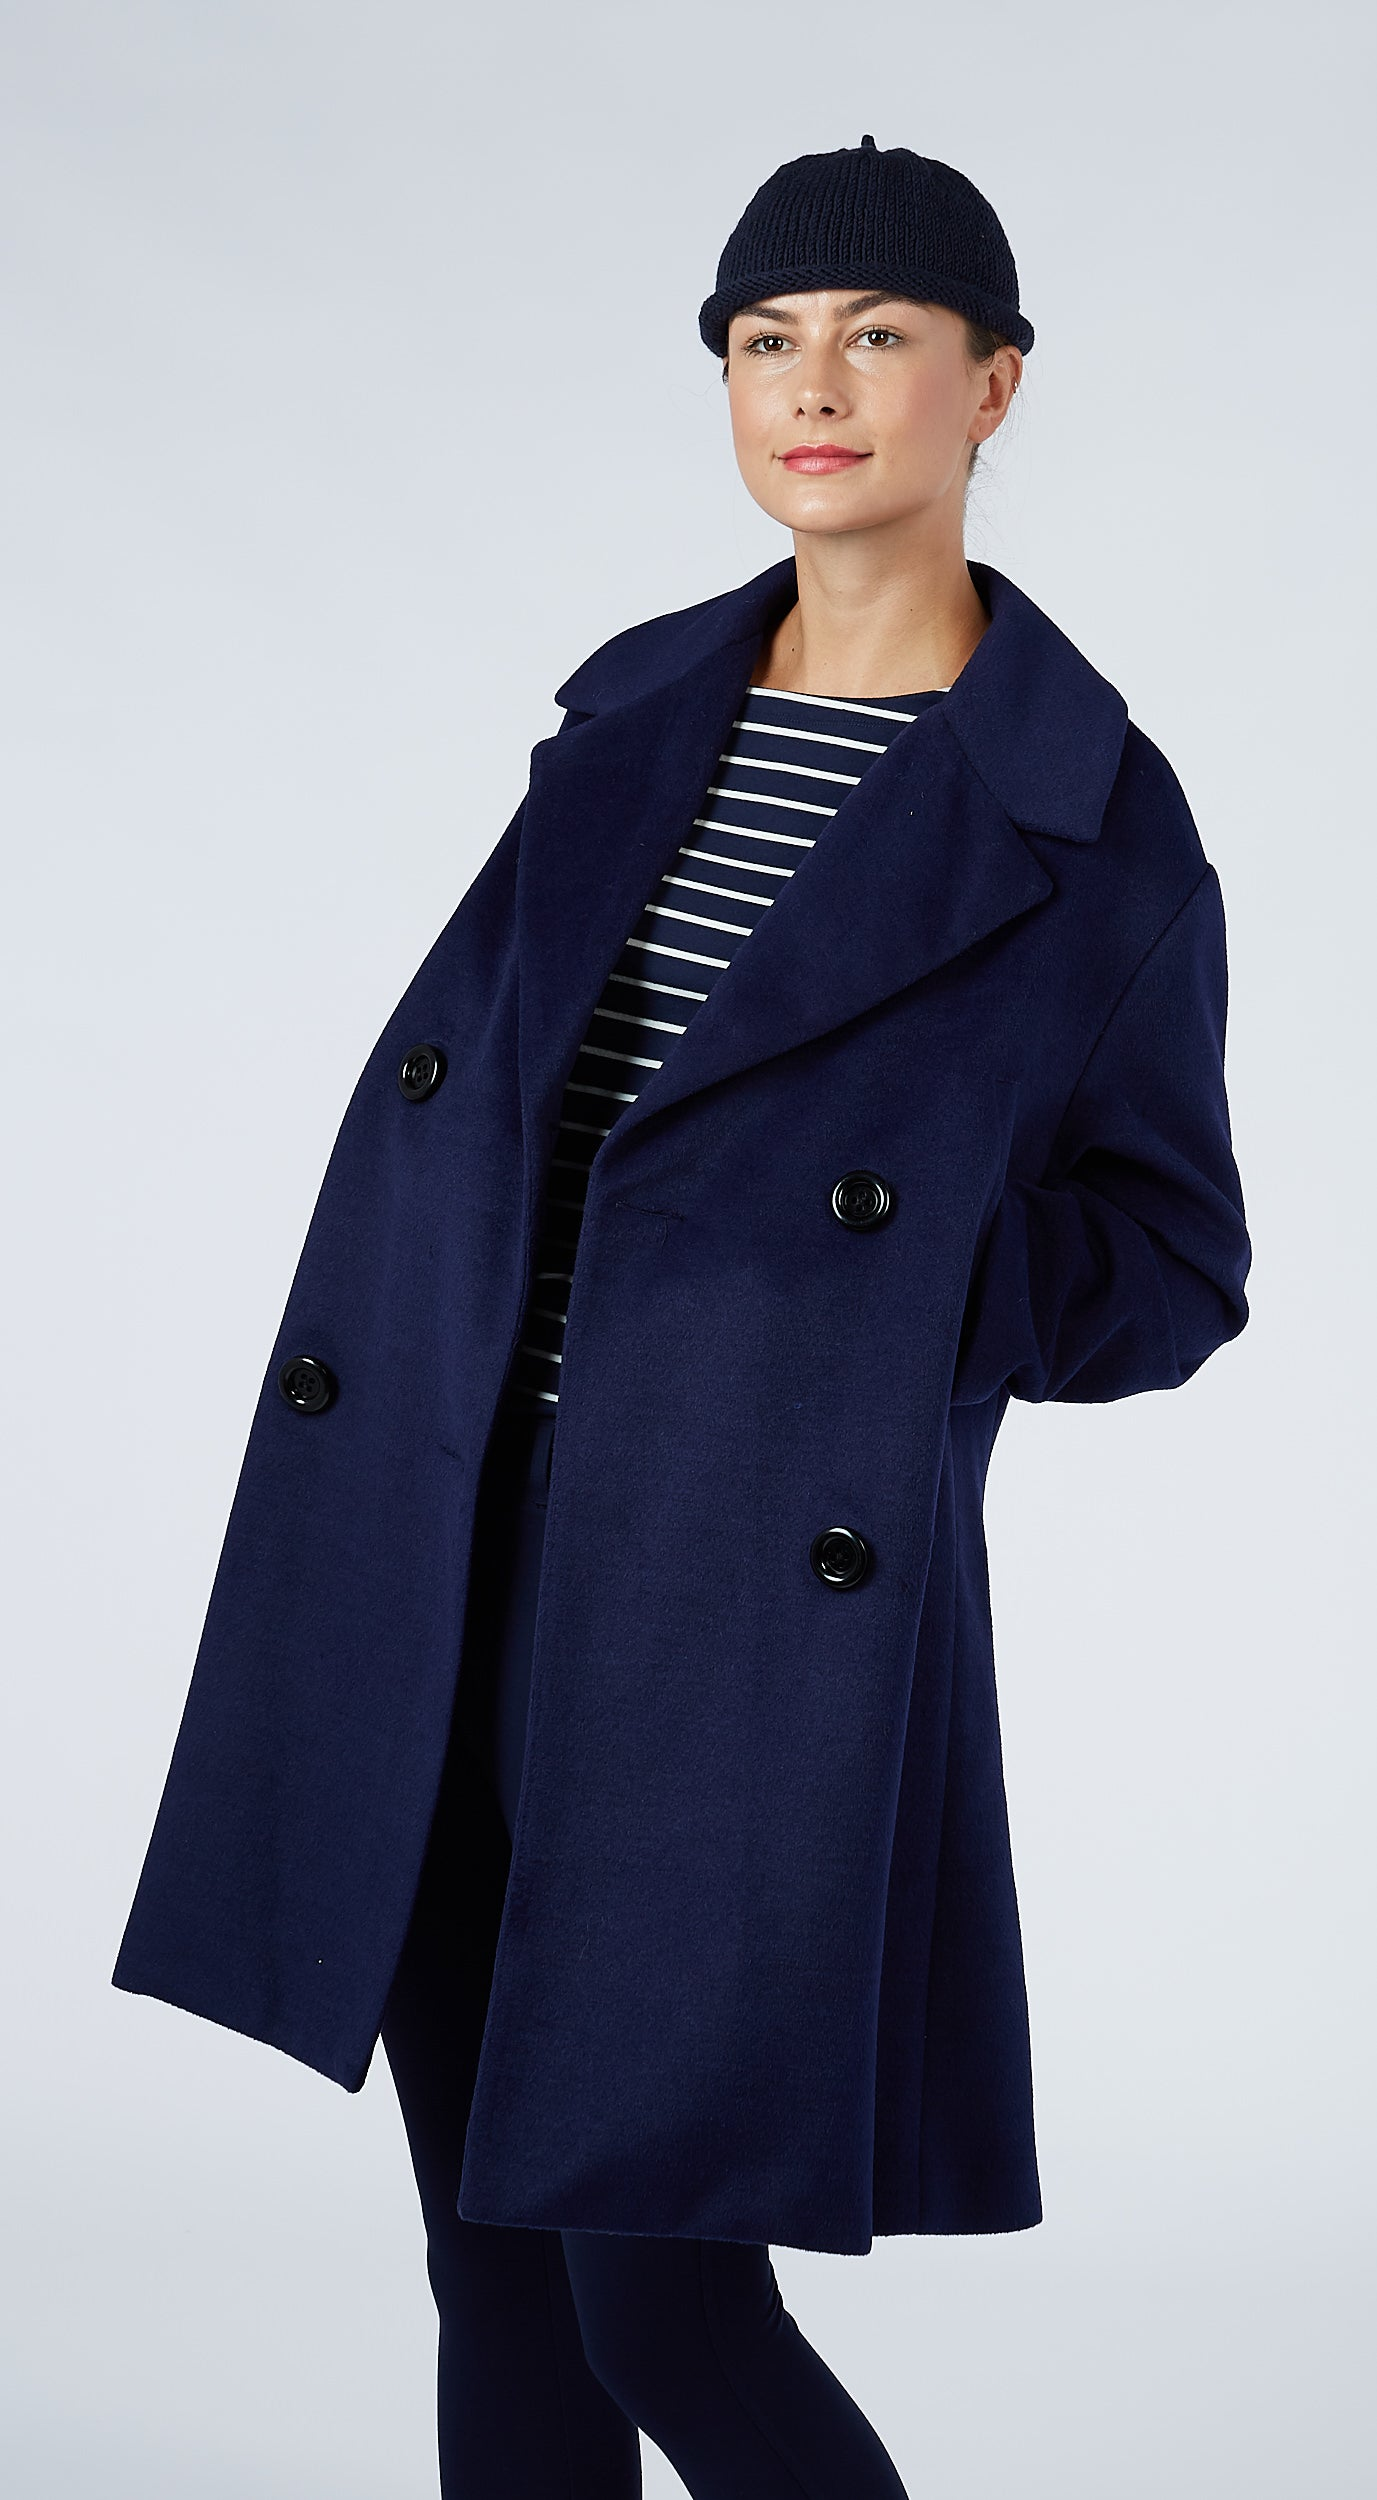 A-Line Sailor Coat - Navy